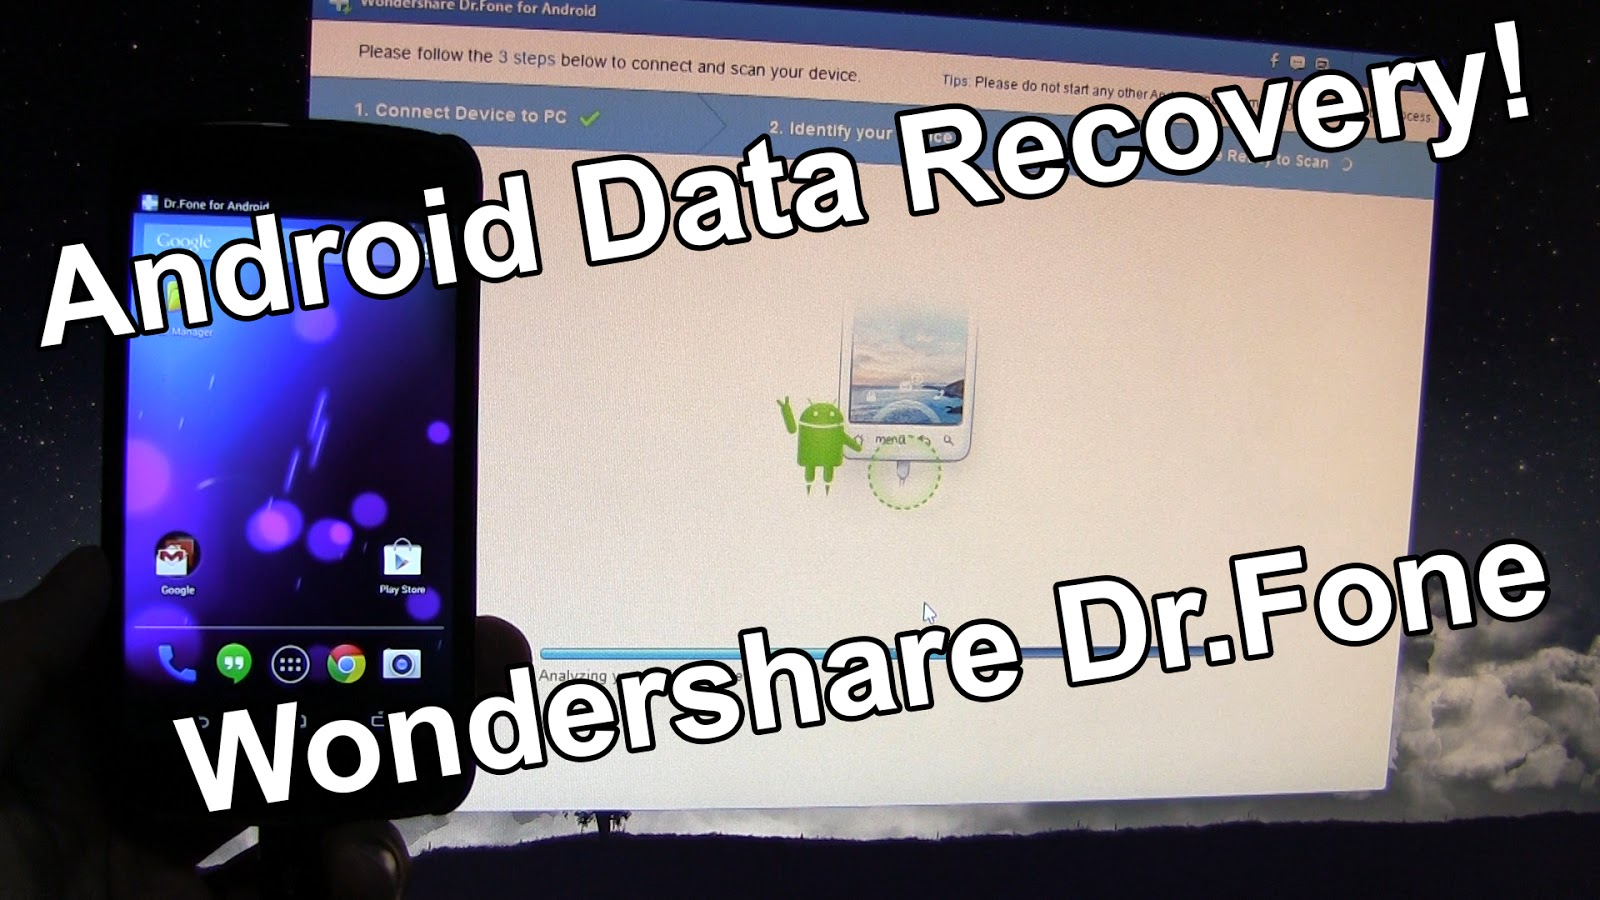 wondershare data recovery app for android